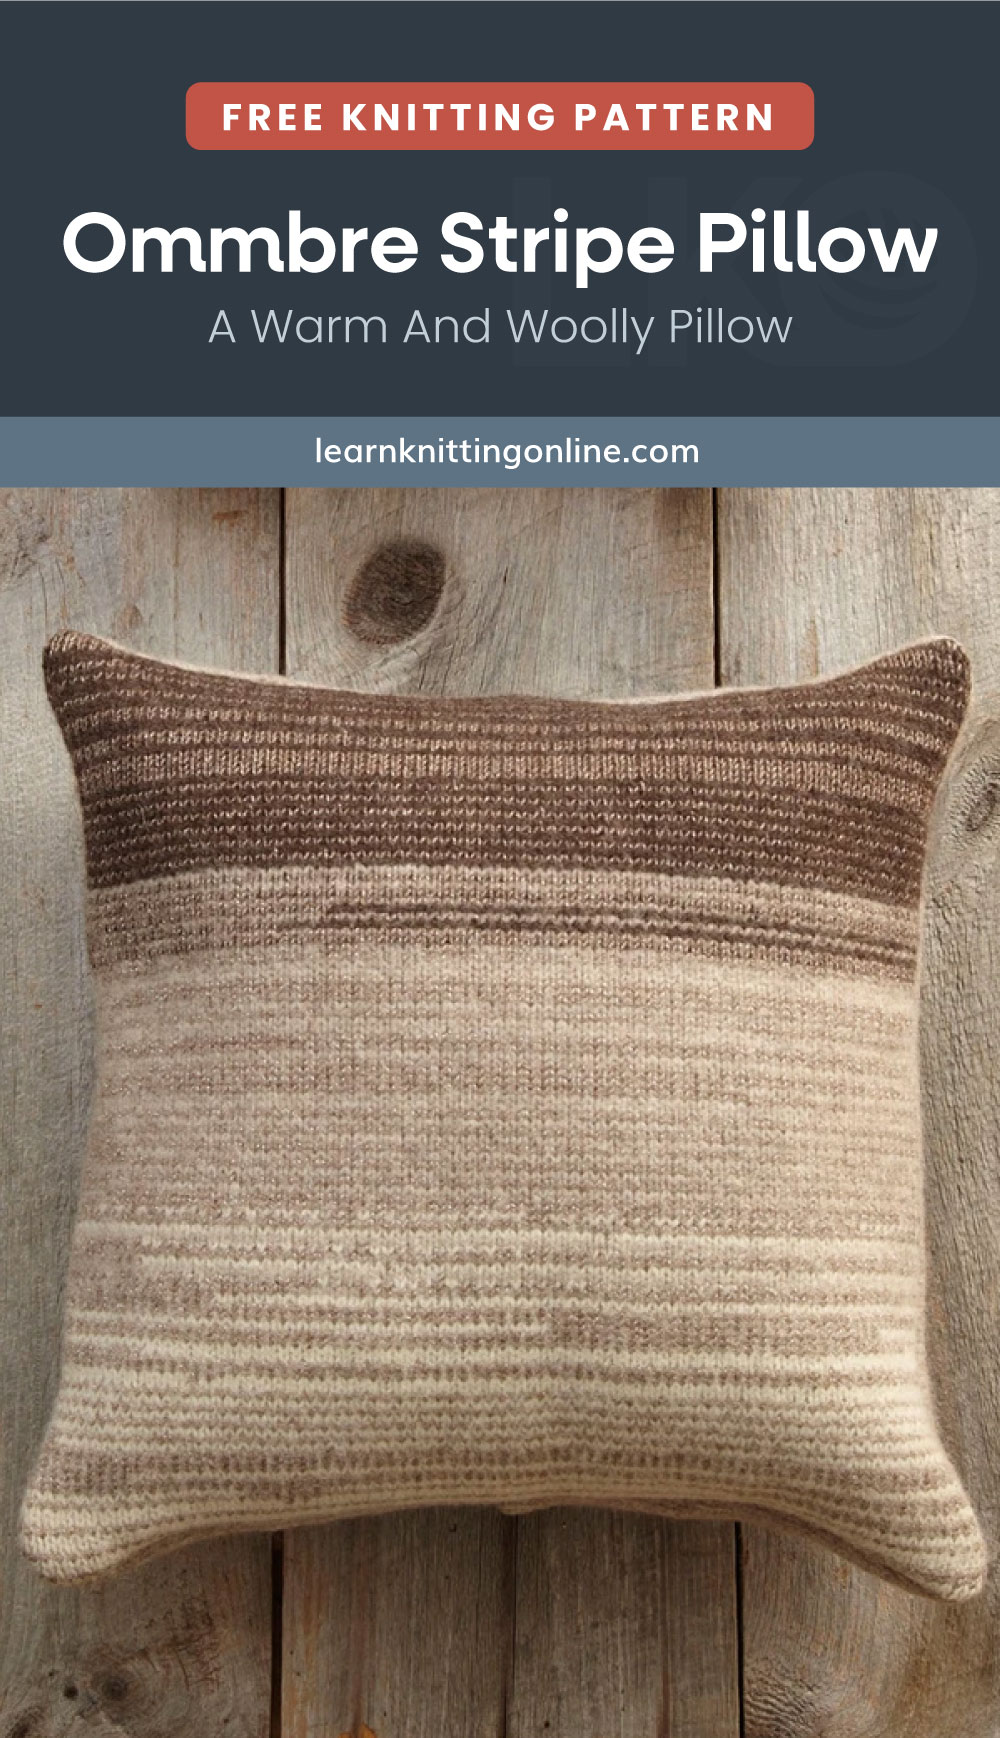 """Text area which says """"Free Knitting Pattern: Ommbre Stripe Pillow - A Warm And Woolly Pillow, learnknittingonline.com"""" followed by a knitted pillow in a brown gradient on a wooden surface"""